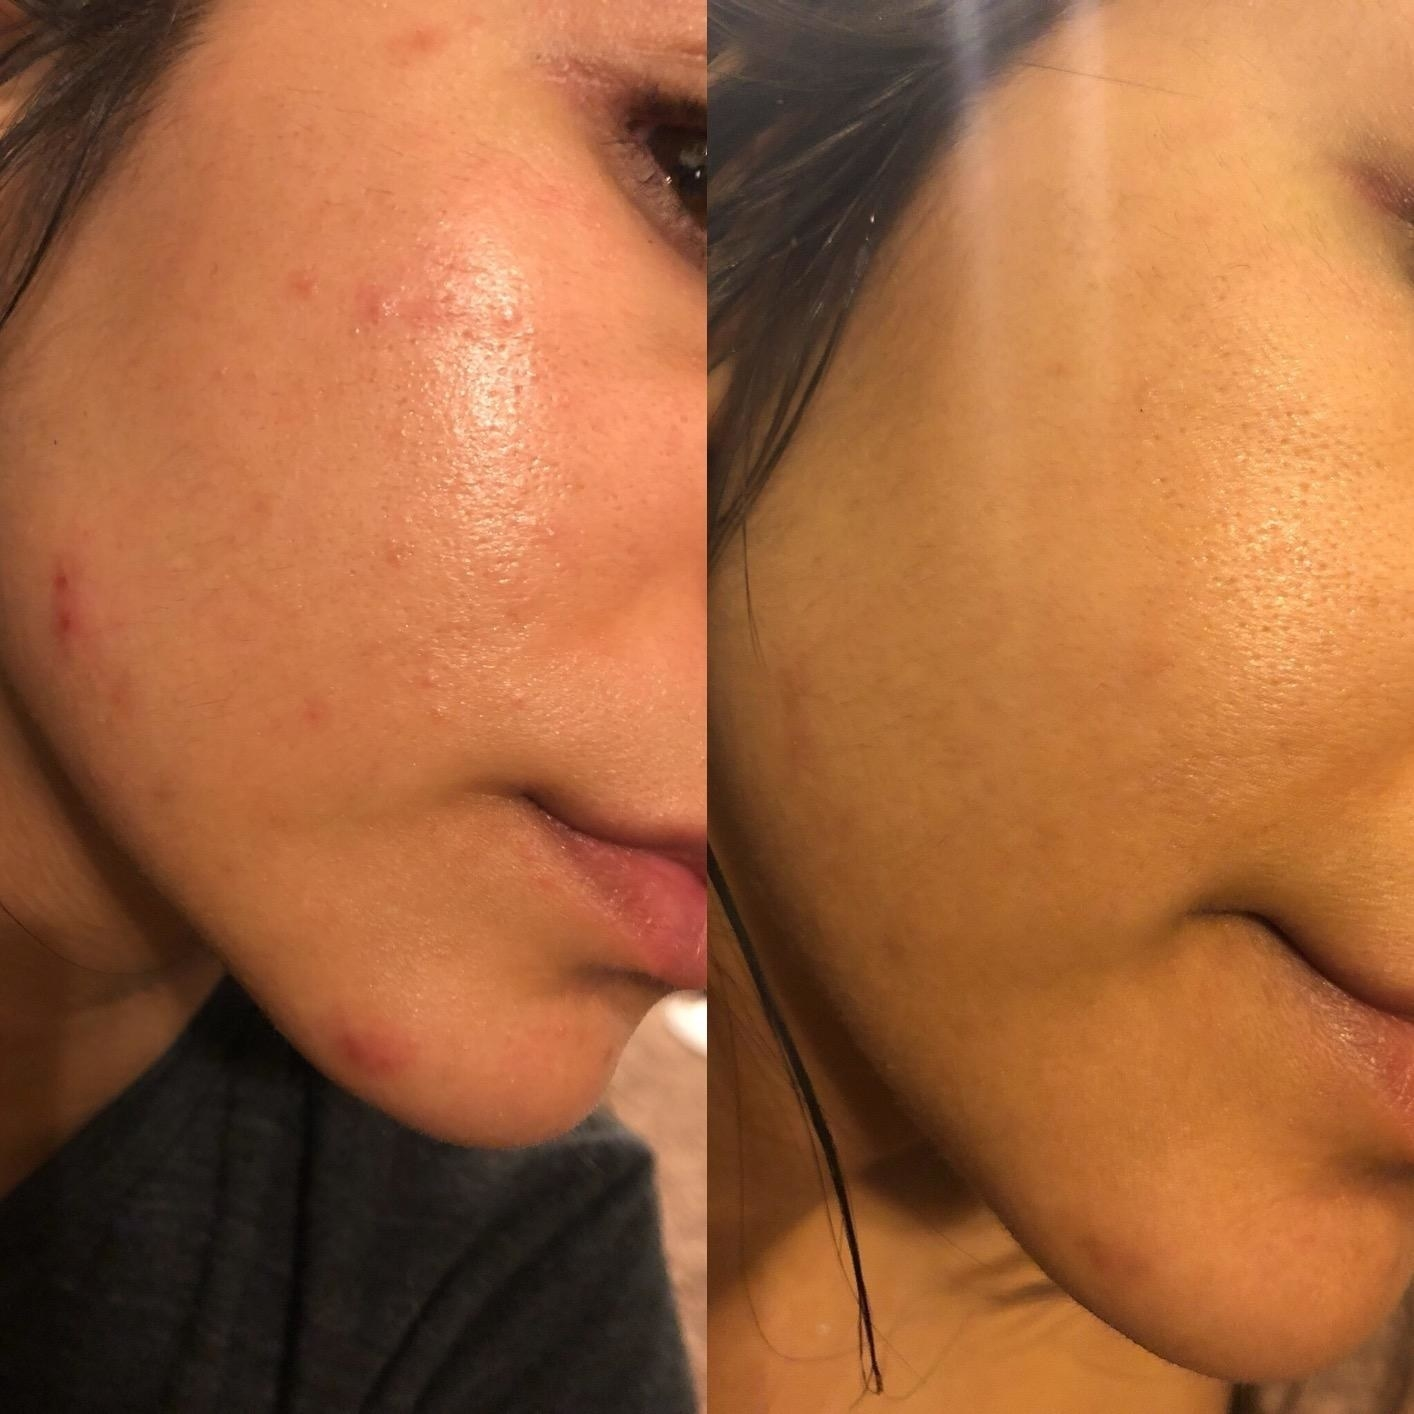 reviewer's before-and-after of the side of their face have red bumps compared to almost all of the bumps and redness being completely gone